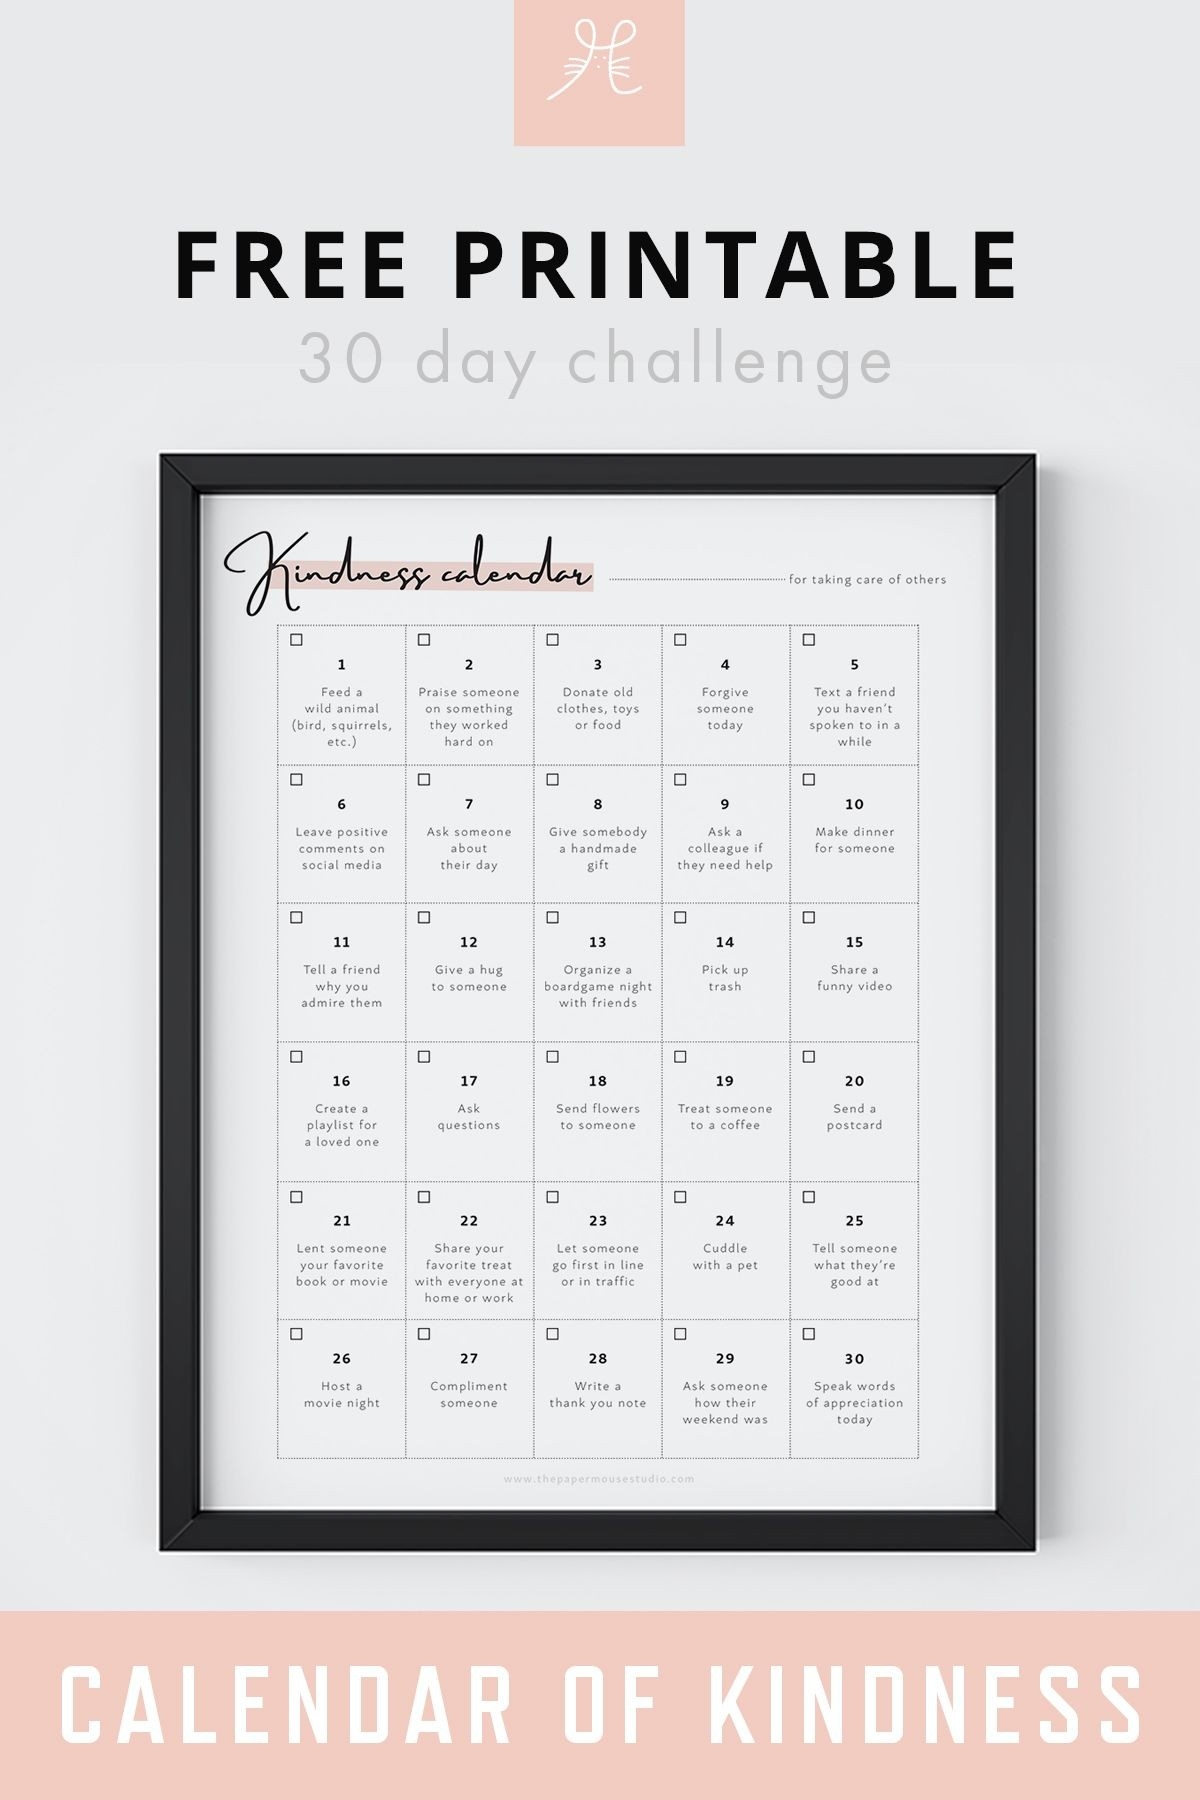 Free Downloads | Printables Freebies, Free, Inspirational Quotes  30 Day Challenge Calendar